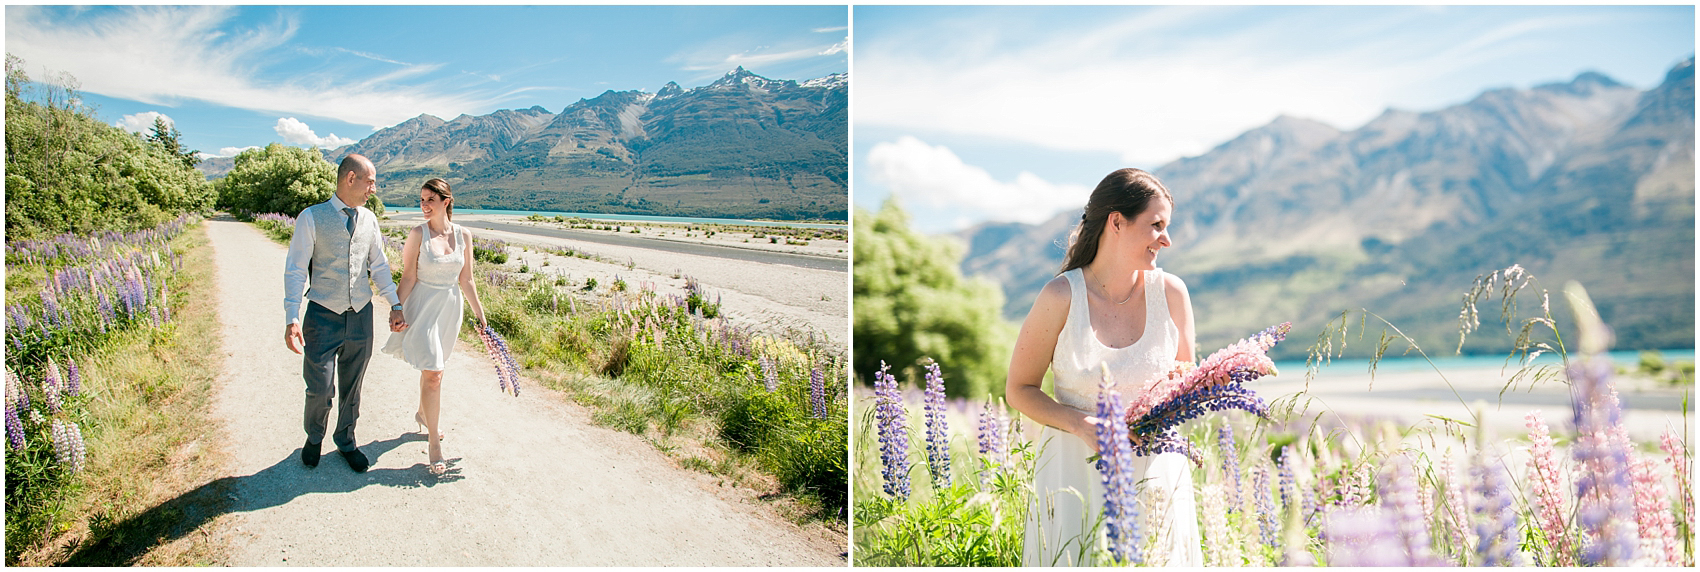 Queenstown New Zealand Wedding Photographer Bruna Fabricio Smetona Photo-0040.jpg